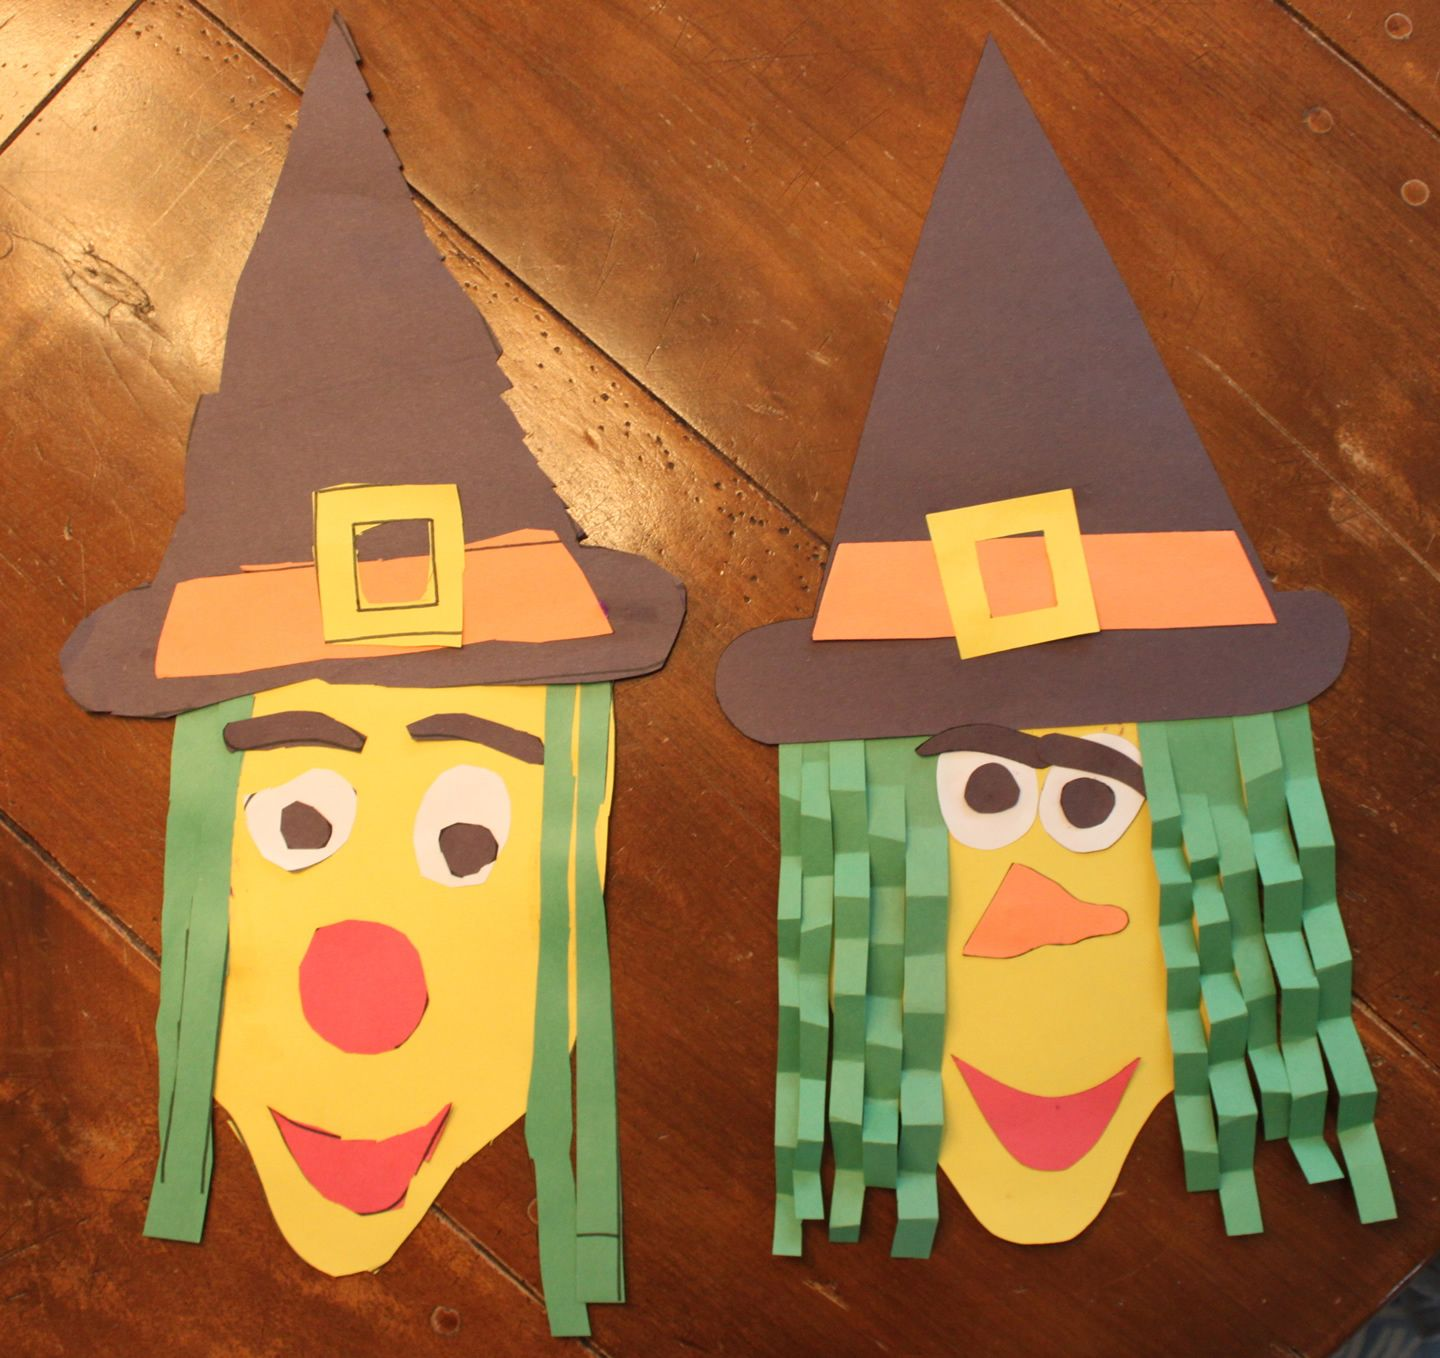 best images about cute witch crafts for halloween for kids on 17 best images about cute witch crafts for halloween for kids